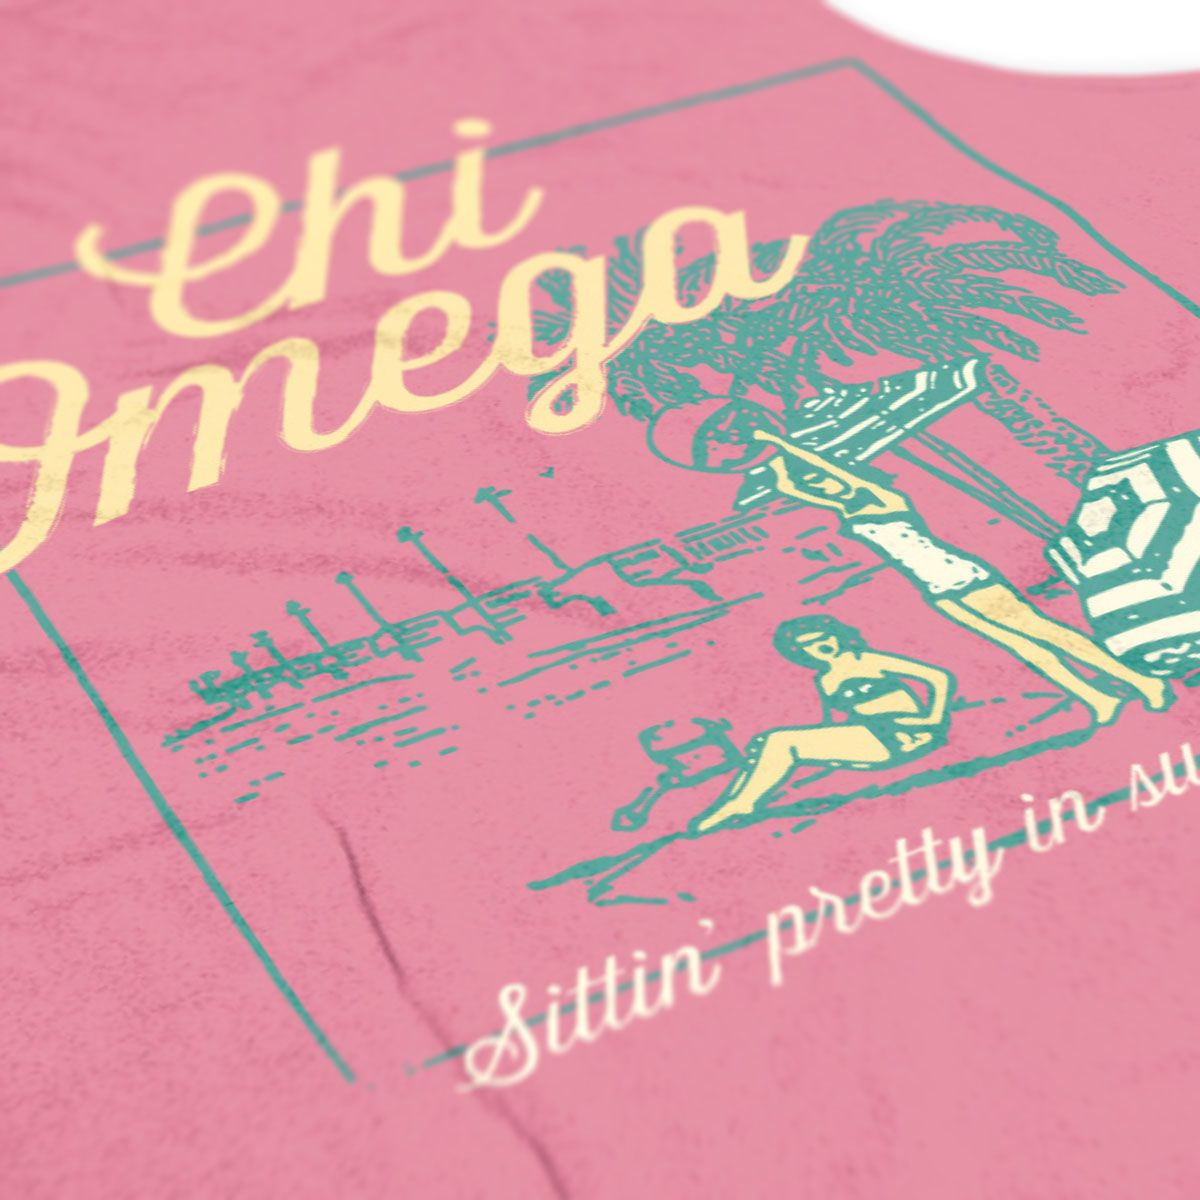 Chi Omega - ChiO - Chi O Tanks - Arkansas Chi O - Psi Chapter - Spring Break Tank - Sorority Tshirts - Check out b-unlimited.com!